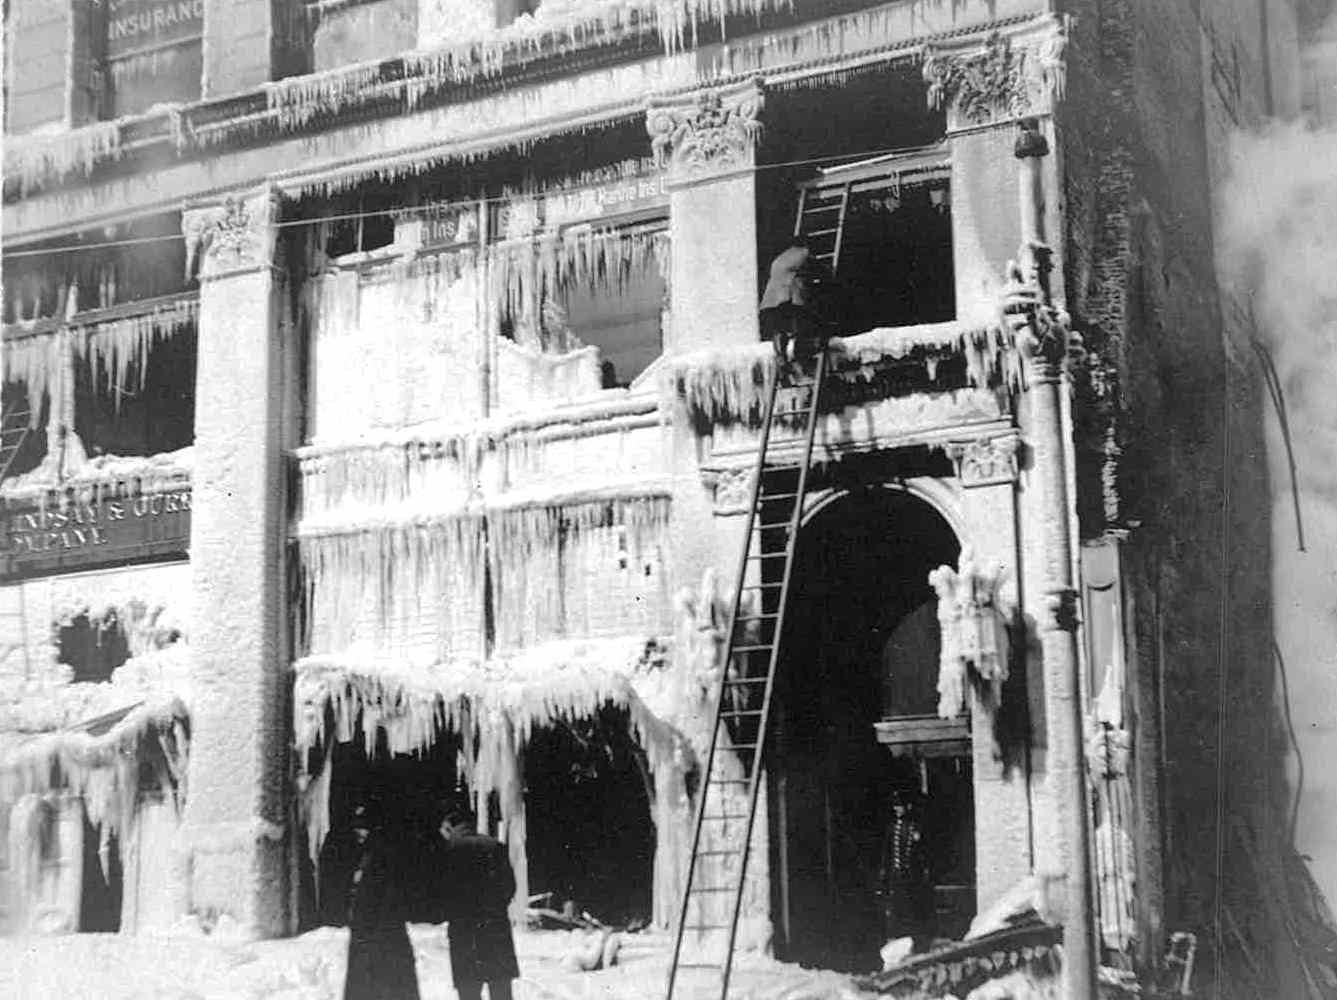 Ice hangs from Sibley's following a fire that burned for nearly 40 hours in 1904.